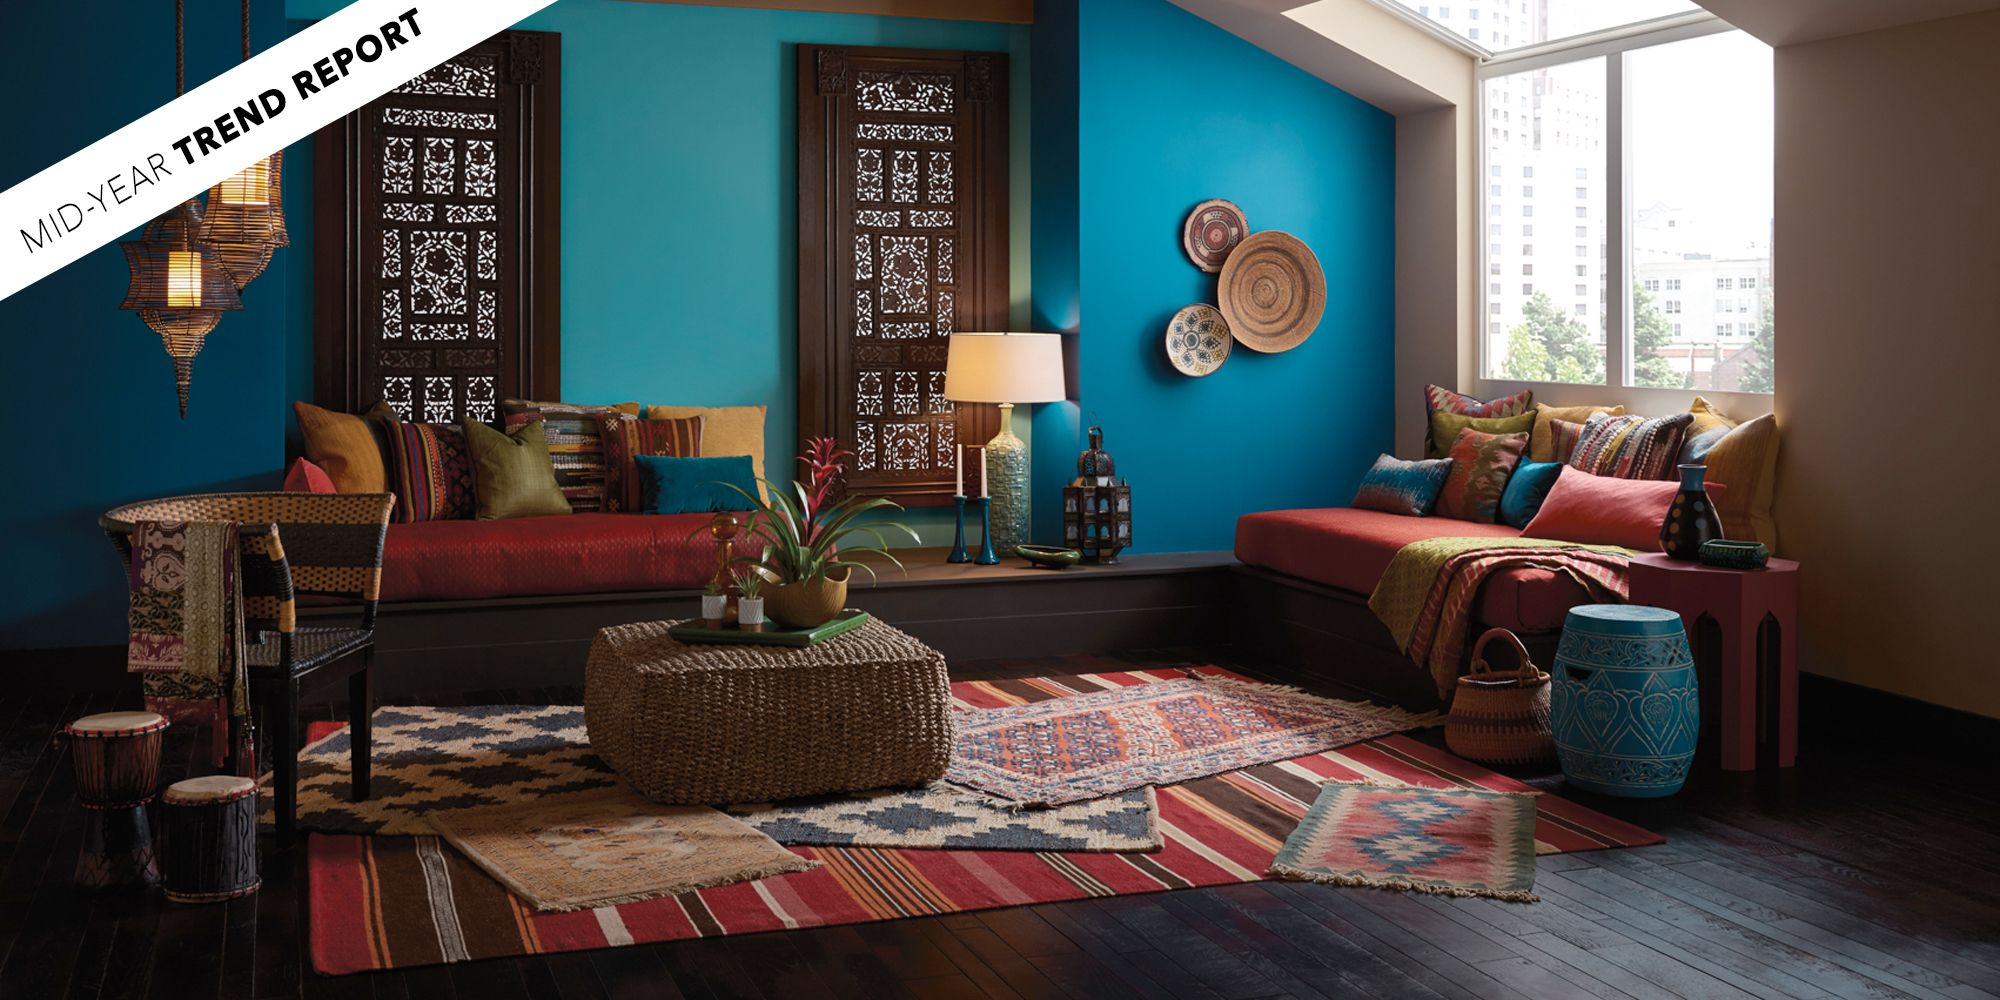 best neutral paint colors for living room sherwin williams round side tables the biggest color trends of 2017 so far - interior design ...